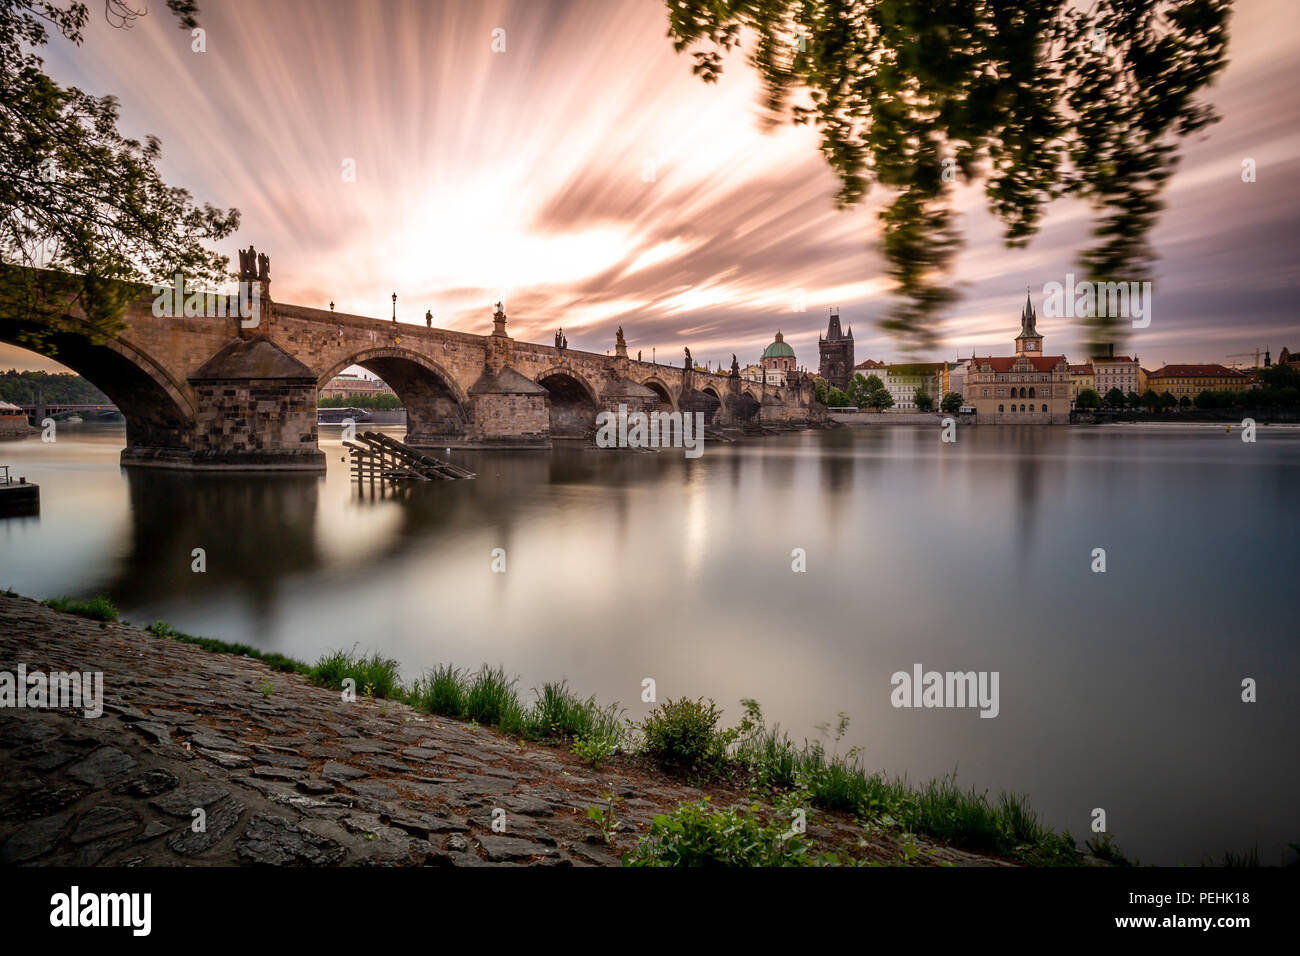 View of Charles Bridge from Kampa with long exposure, Prague - Stock Image